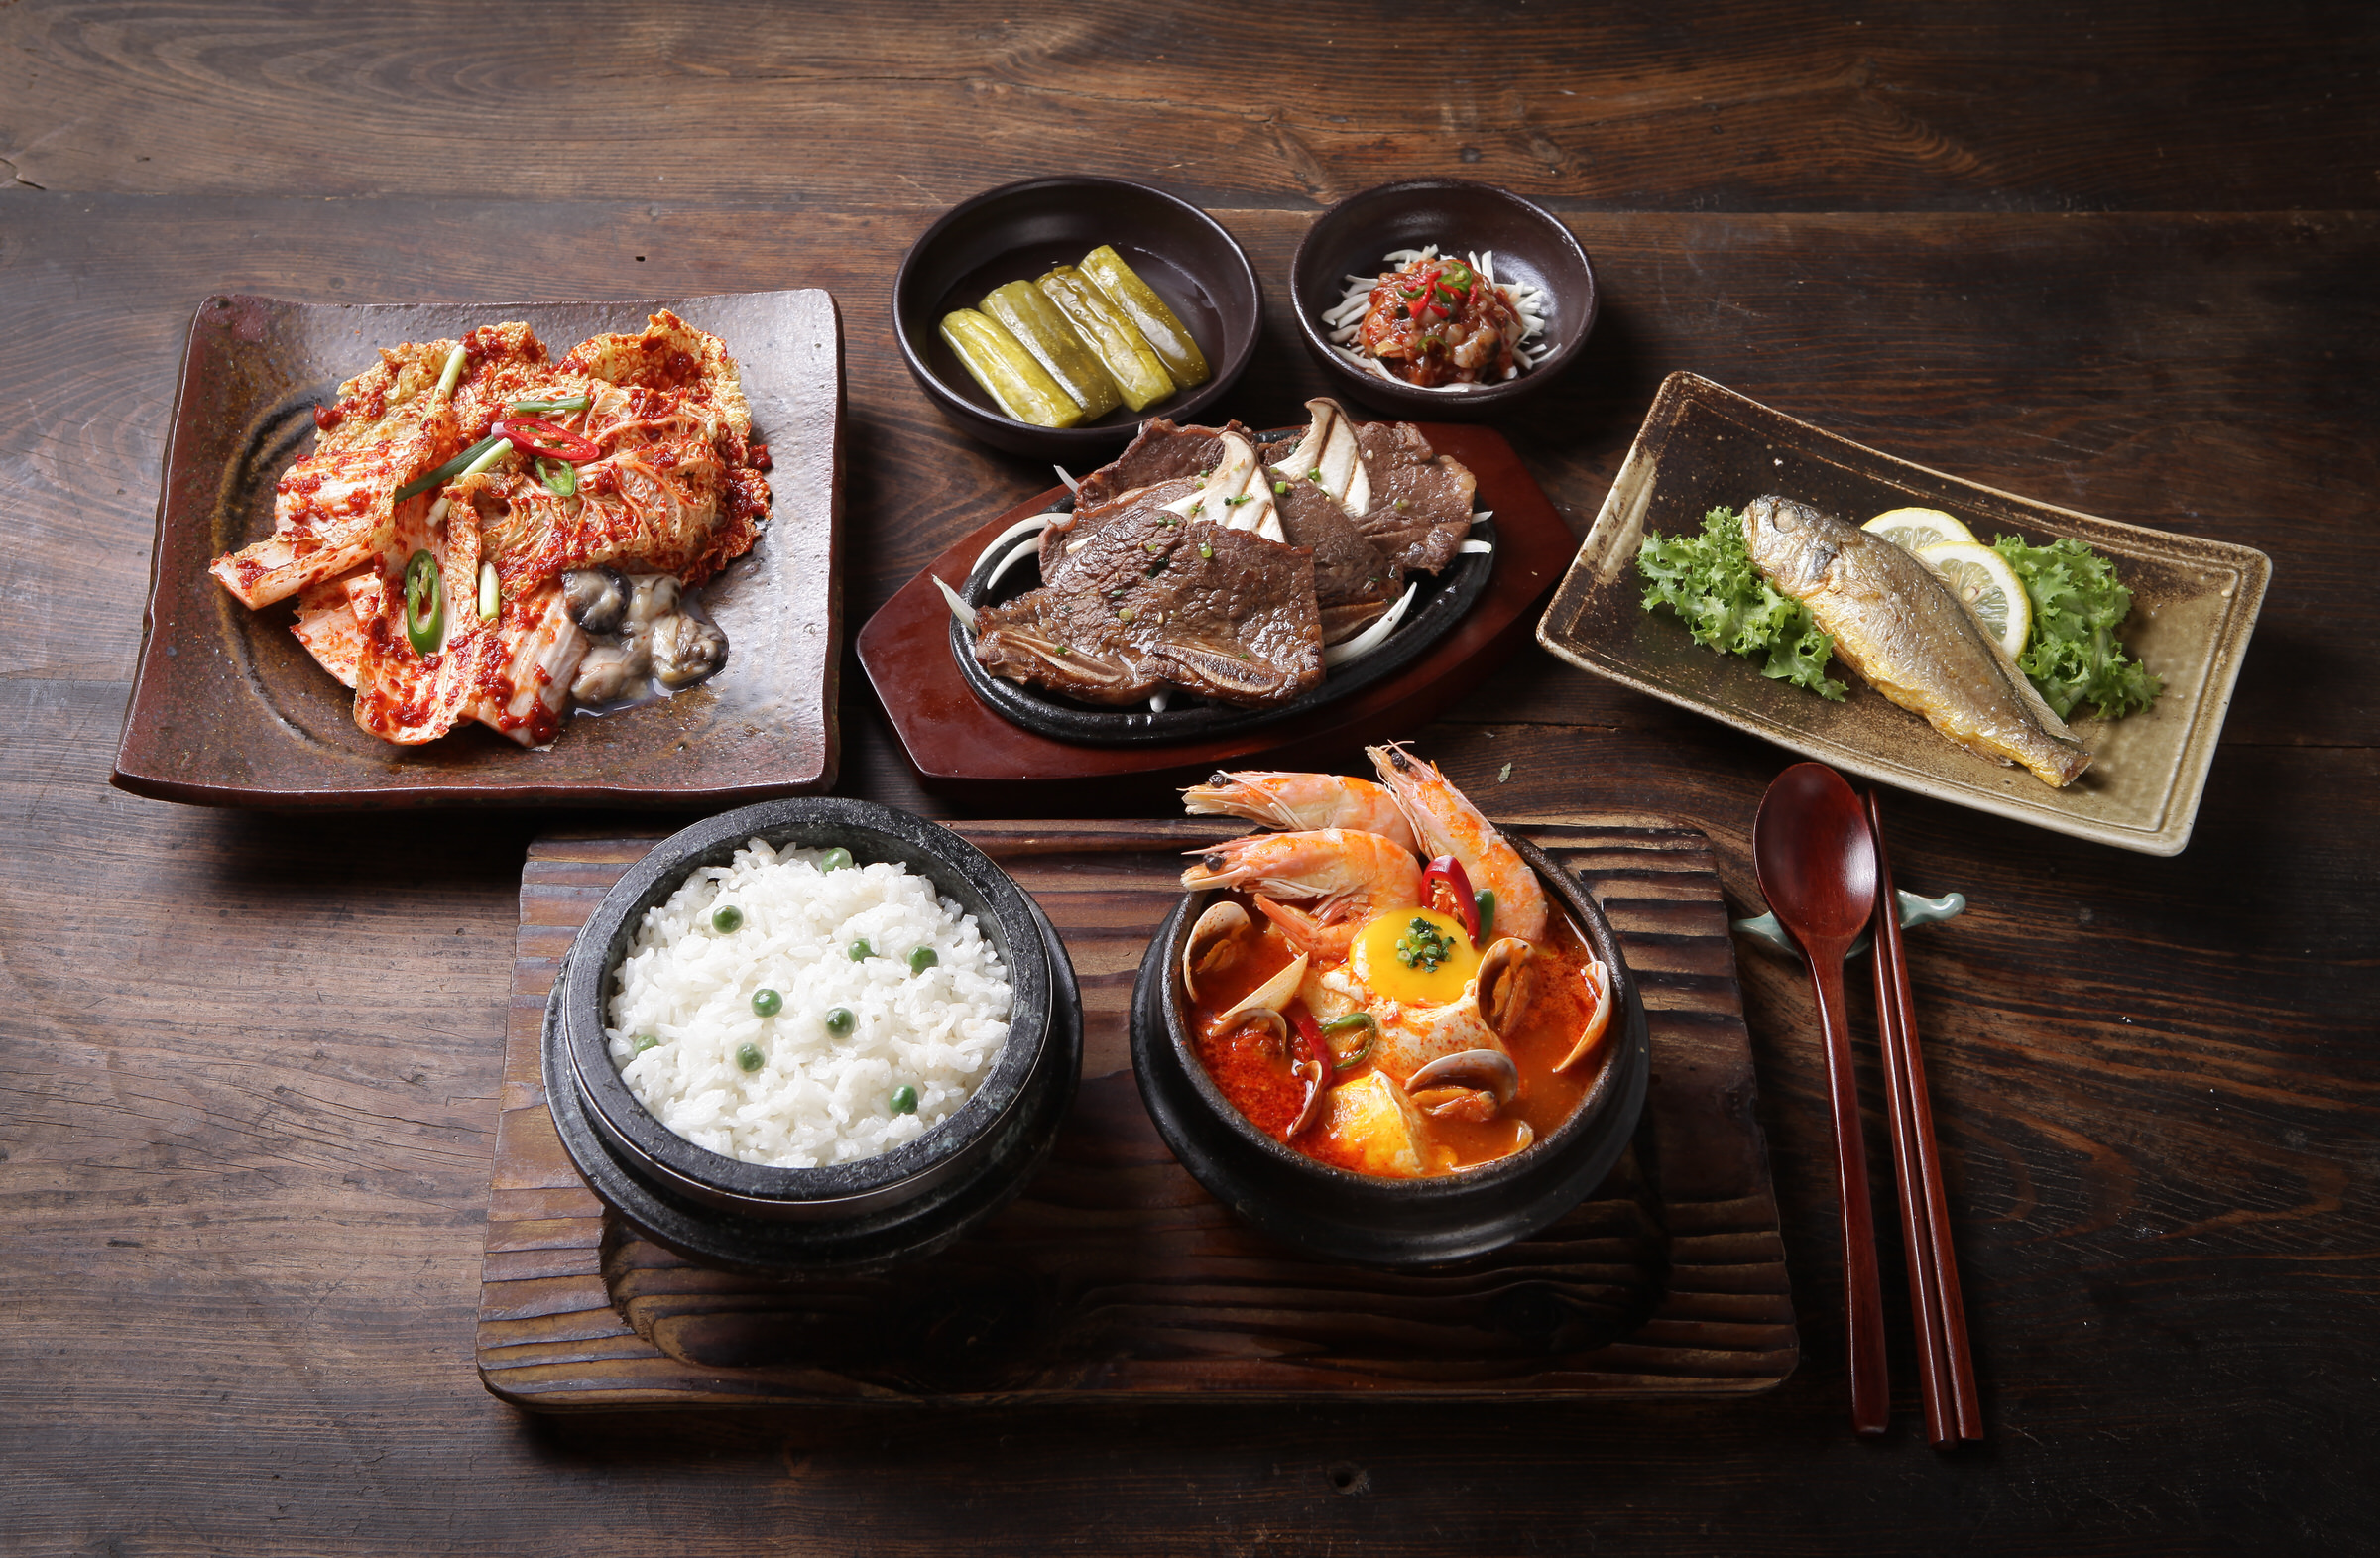 Galbi Combo Dish - Experience our Galbi Combo Dish that highlights our BBQ Short Rib and served with Assorted Soon Tofu.